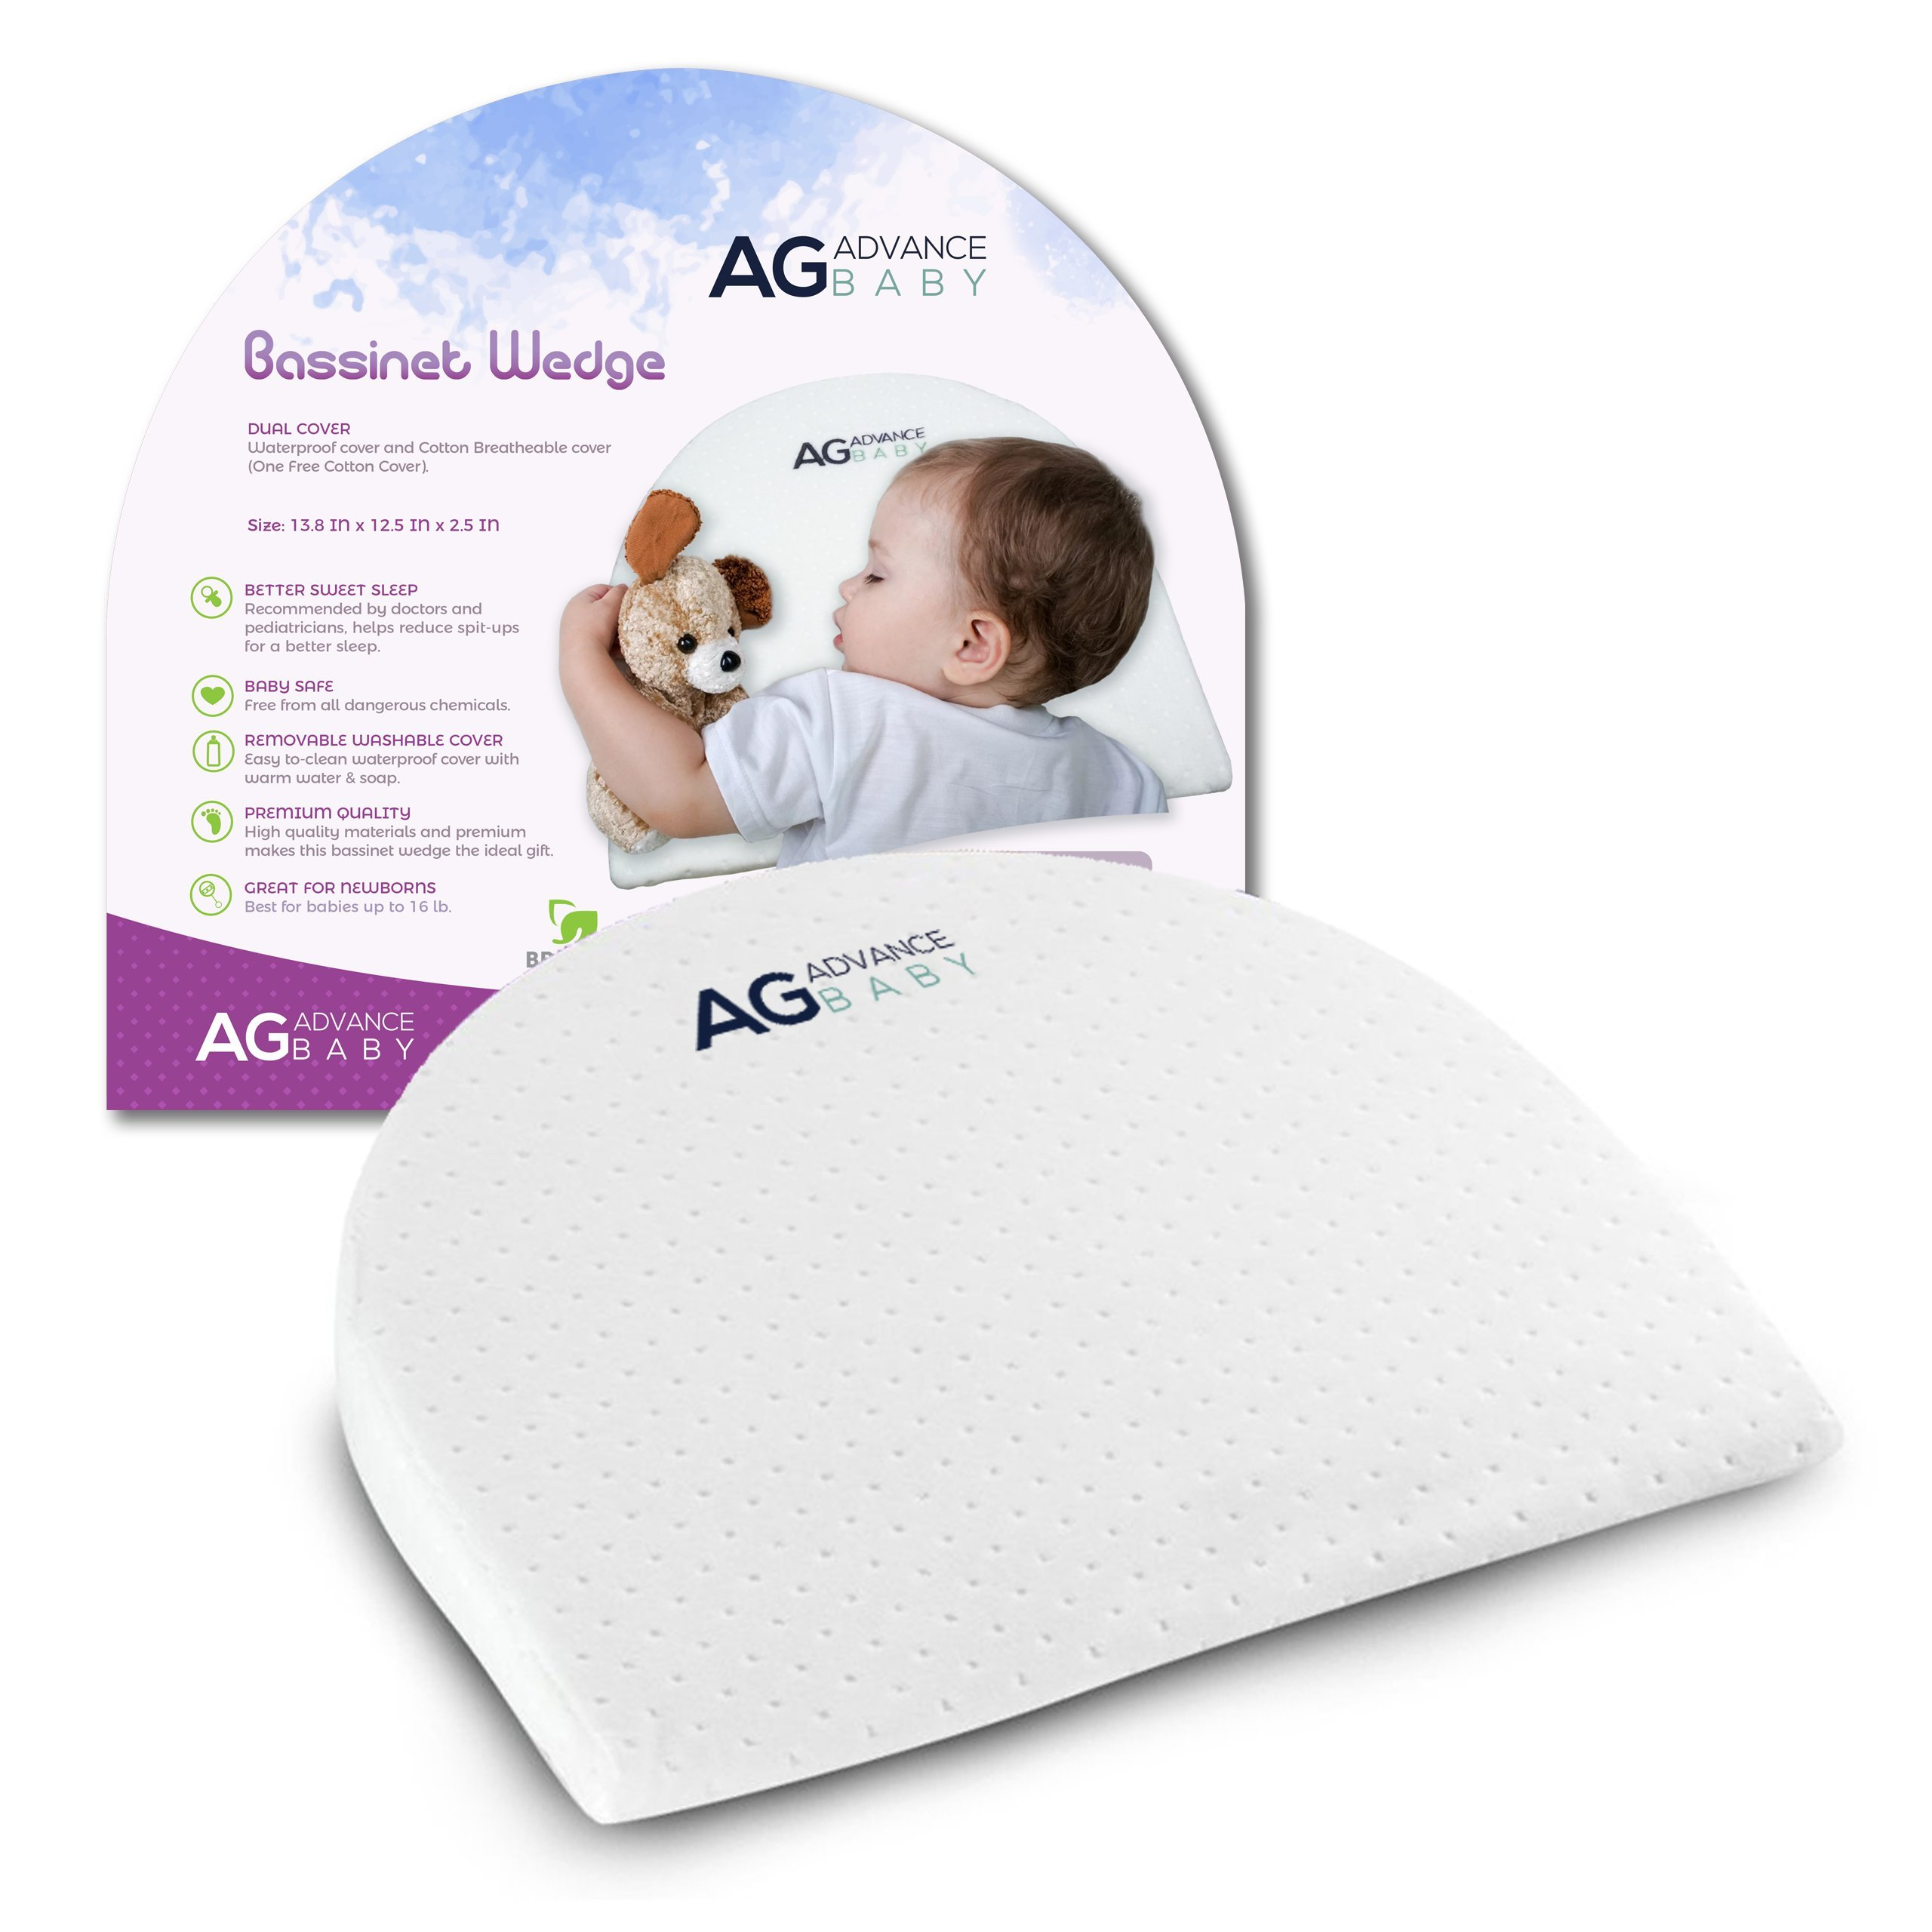 AG Advance Universal BASSINET WEDGE PILLOW For Baby Newborn | Reduce Reflux and Improve Sleep | 100% PREMIUM COTTON Handcrafted Cover | Also used as Pregnancy Pillow Wedge | Washable Removable Cover